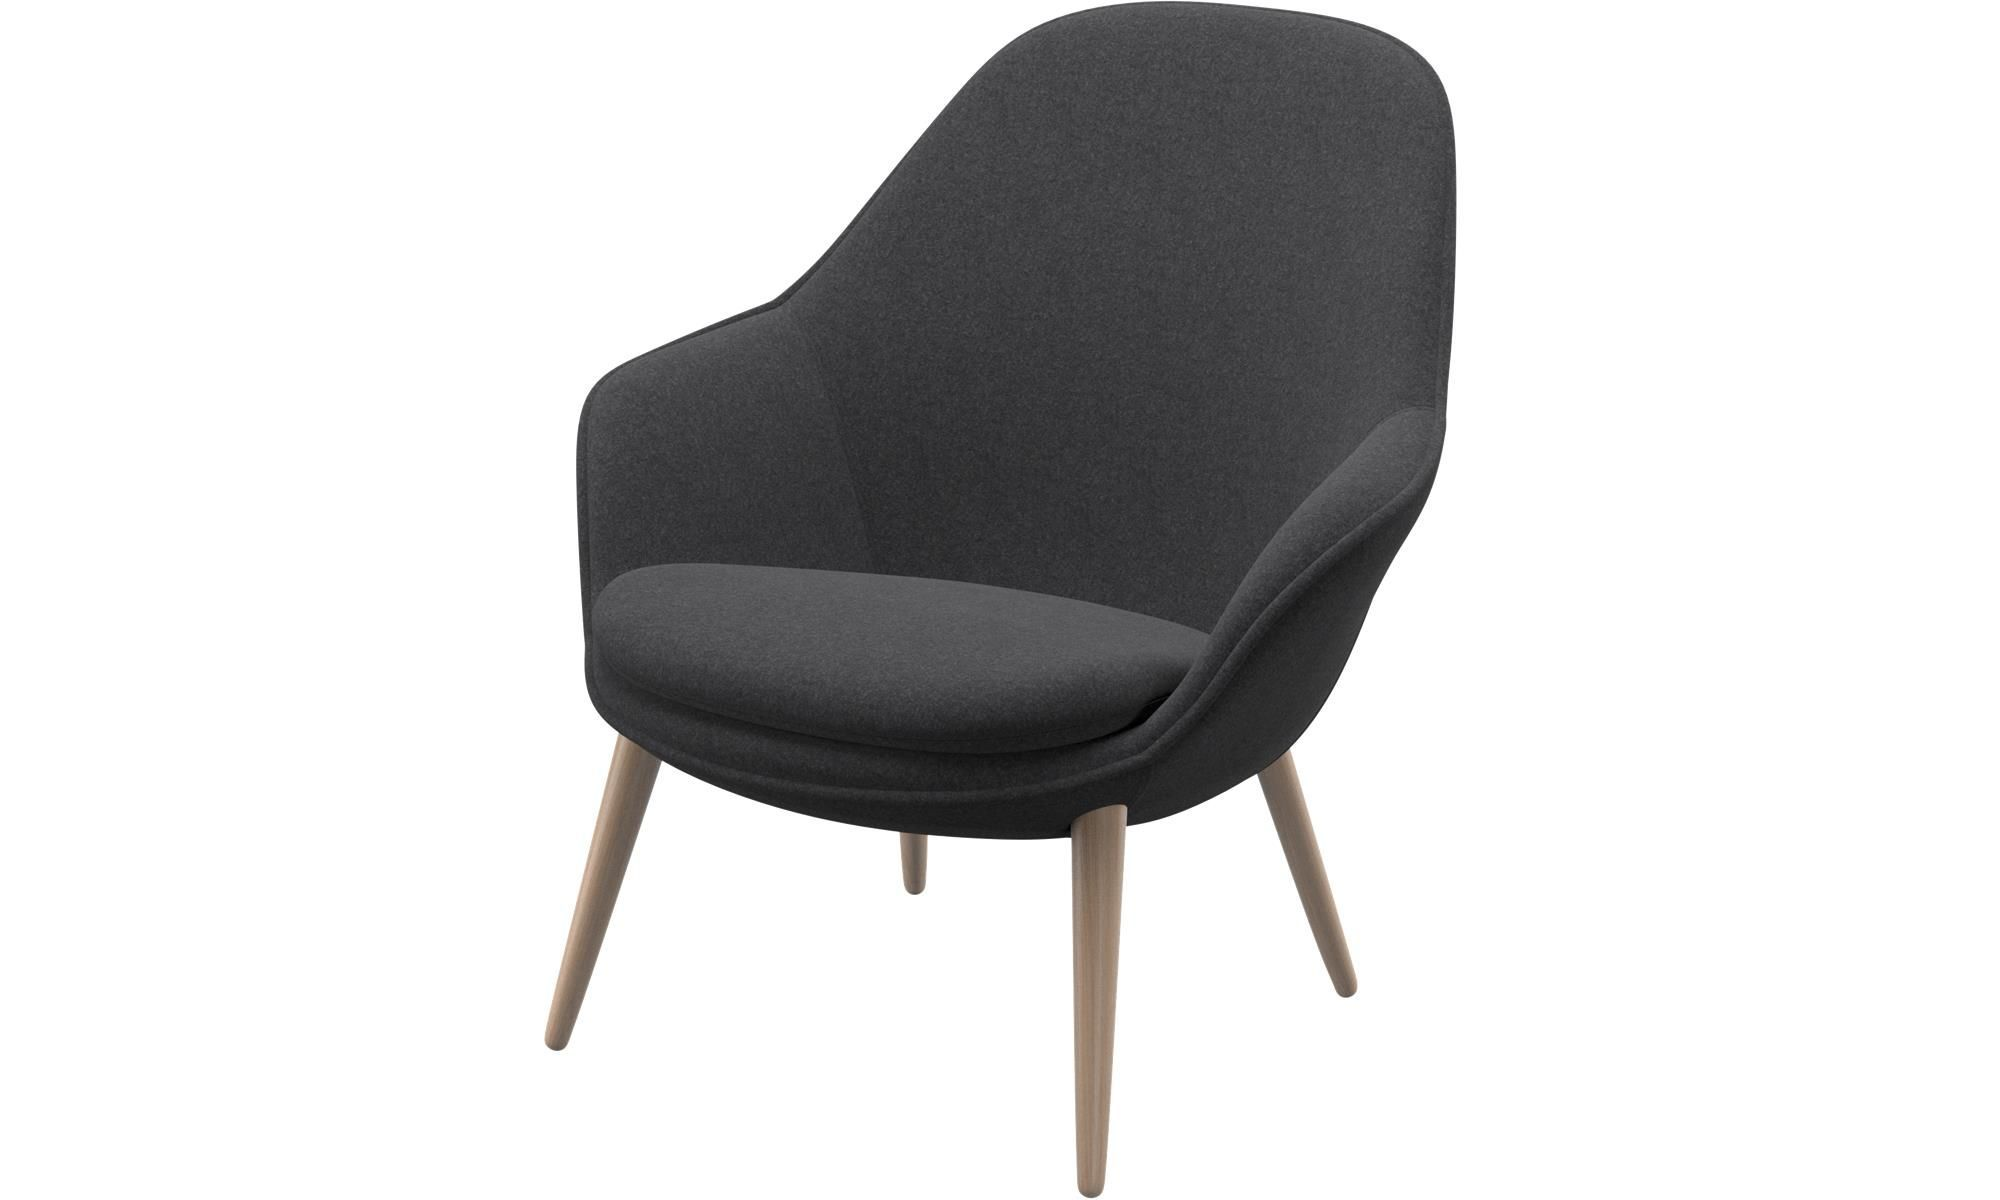 Admirable Armchairs Adelaide Living Chair Grey Fabric Home In Machost Co Dining Chair Design Ideas Machostcouk